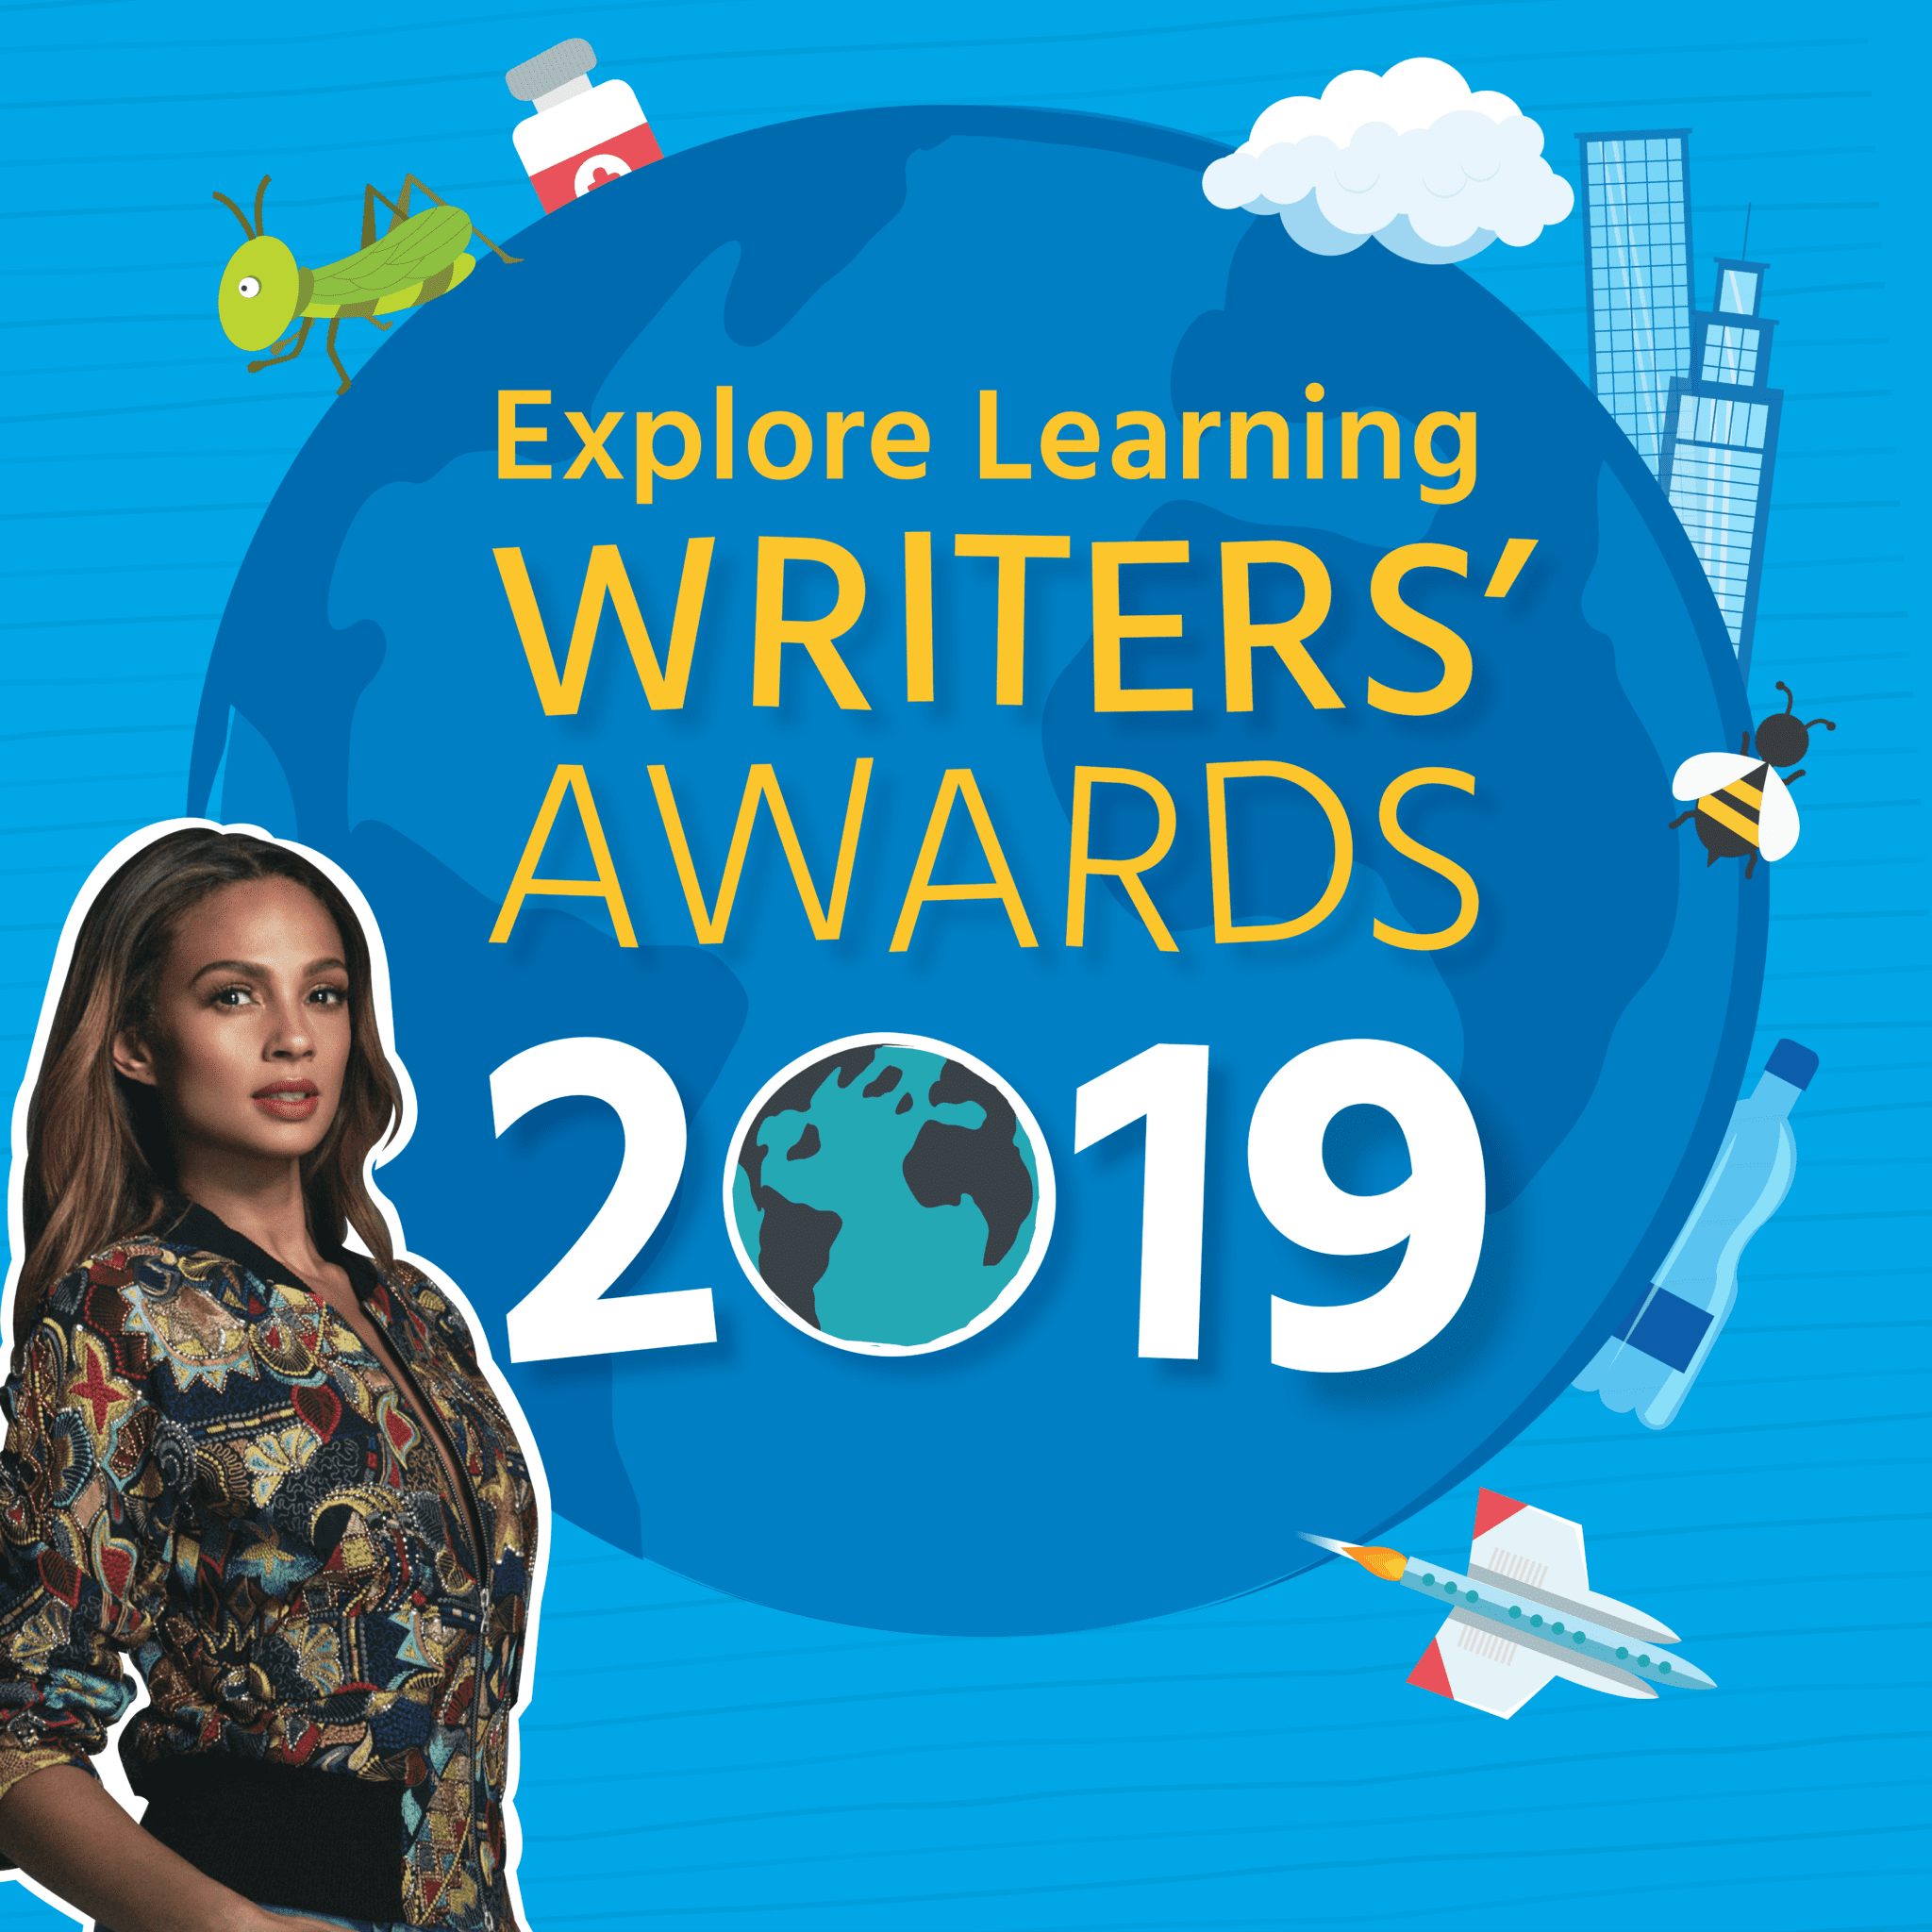 Explore Learning Writers' Awards - Explore Learning